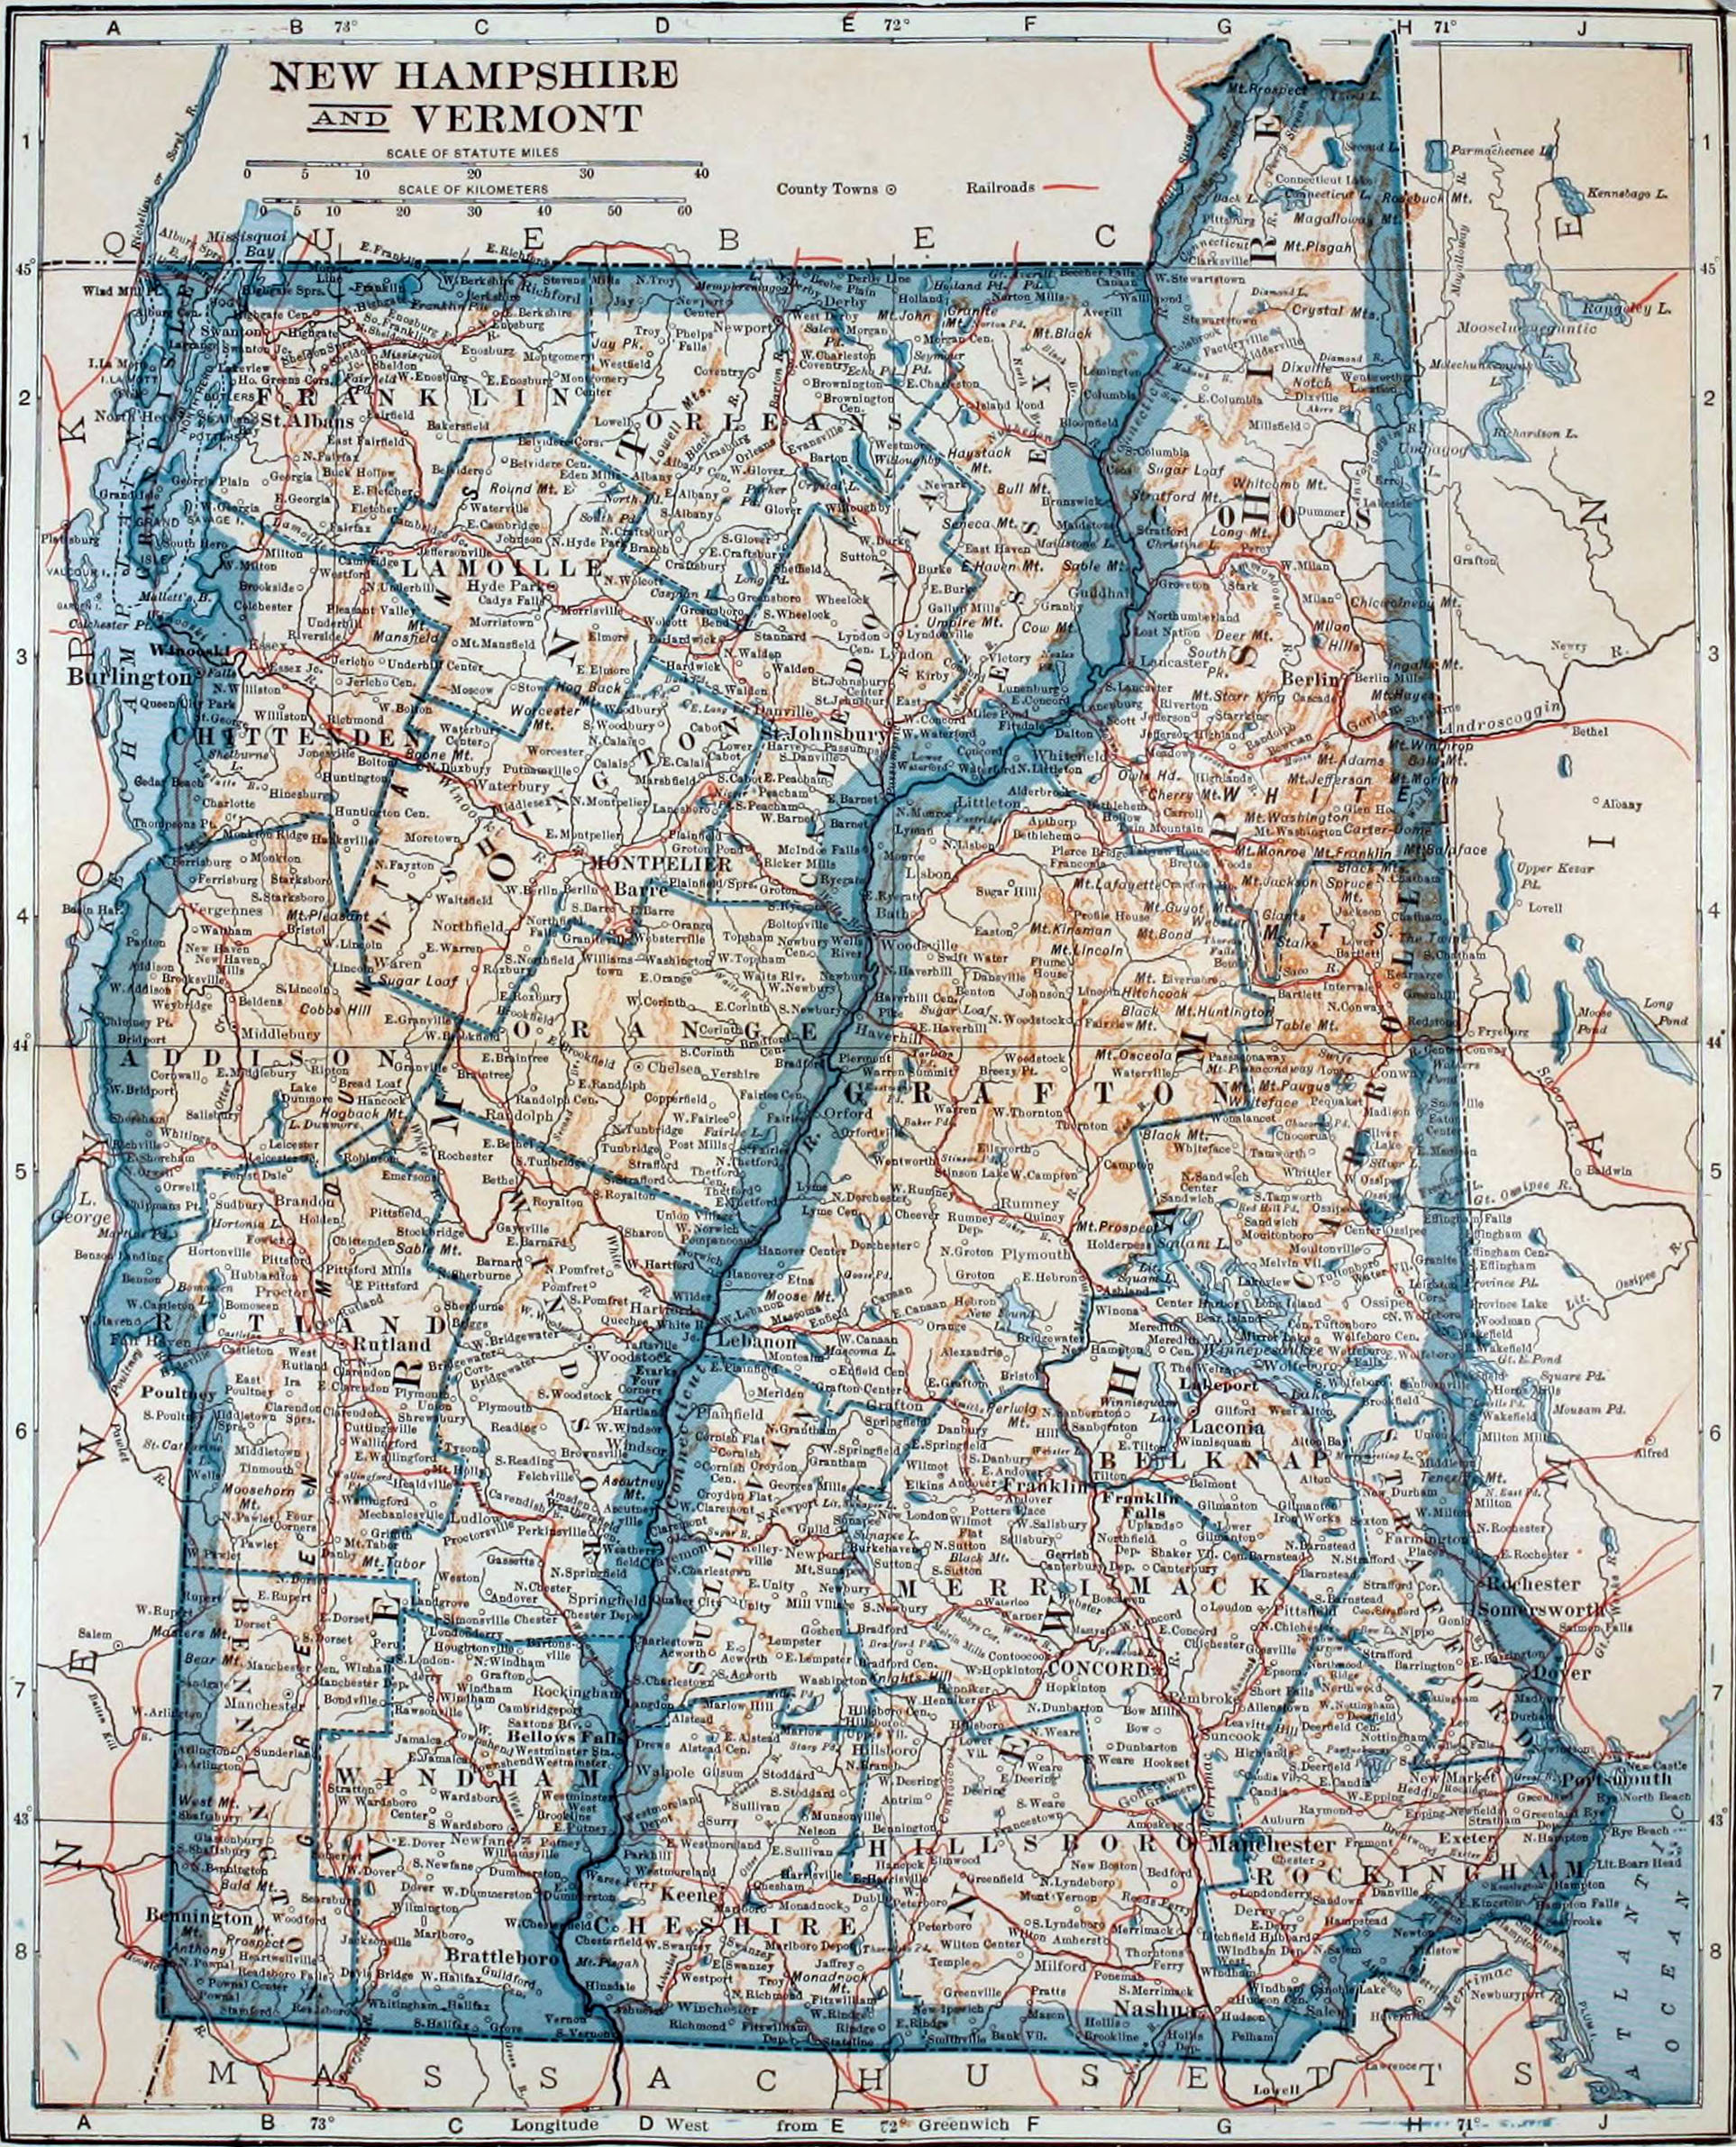 FileColliers New Hampshire And Vermontjpg Wikimedia Commons - Map of vermont and new hampshire